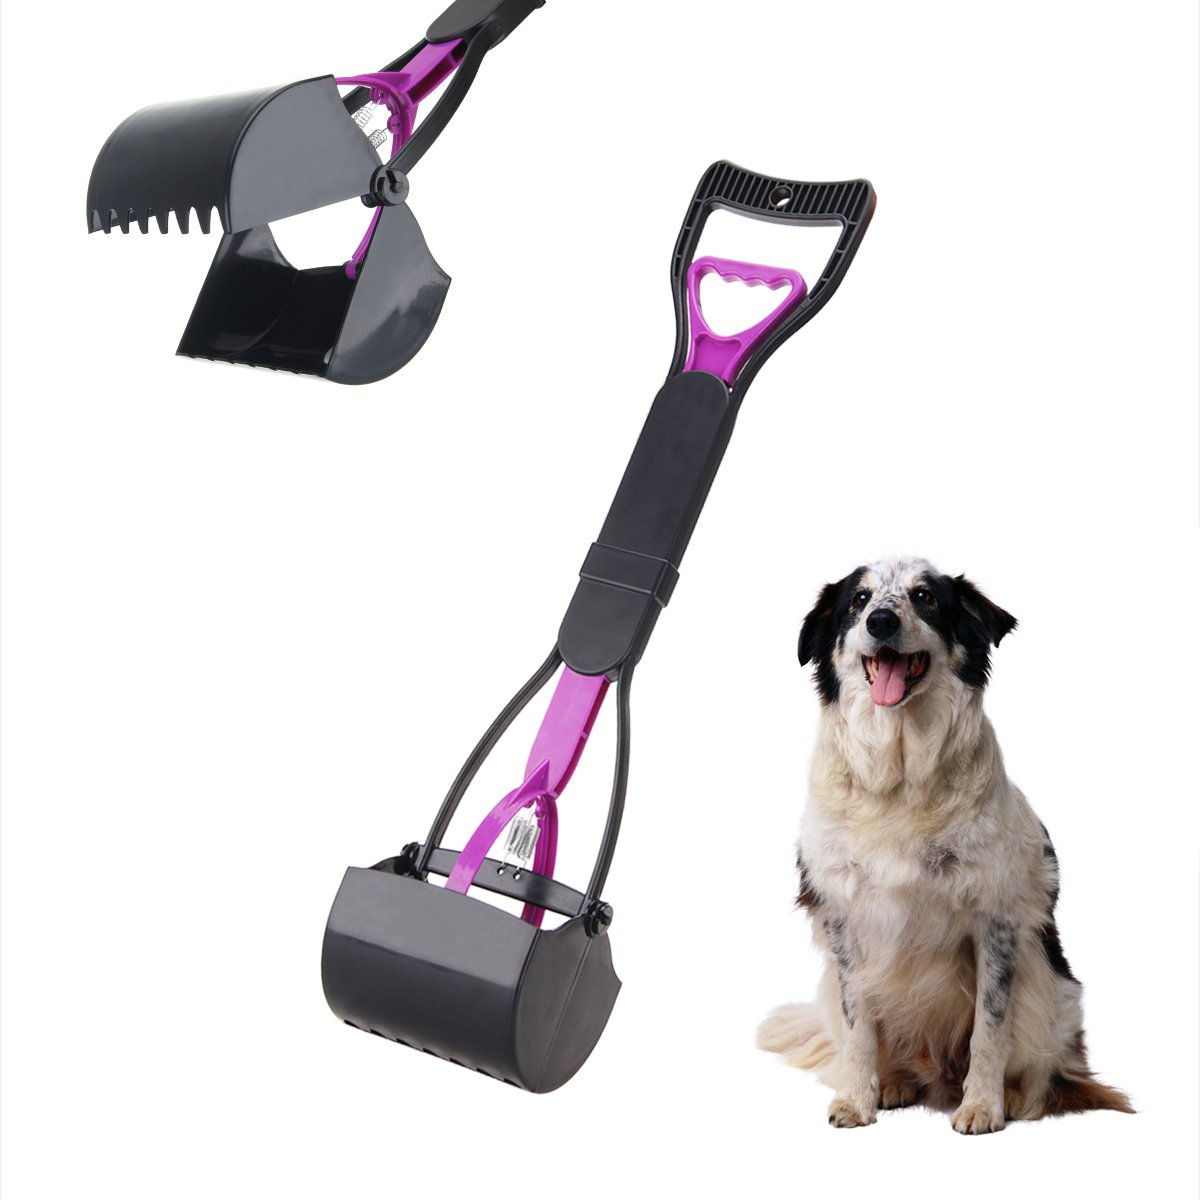 Dpowro Pet Pooper Scooper Small Breeds Poop Pickup Clip Scoop Yard Cleaner Animal Pets Dog Cat Waste Pickup Remover with A Wide Handle Durable Plastic Purple Black